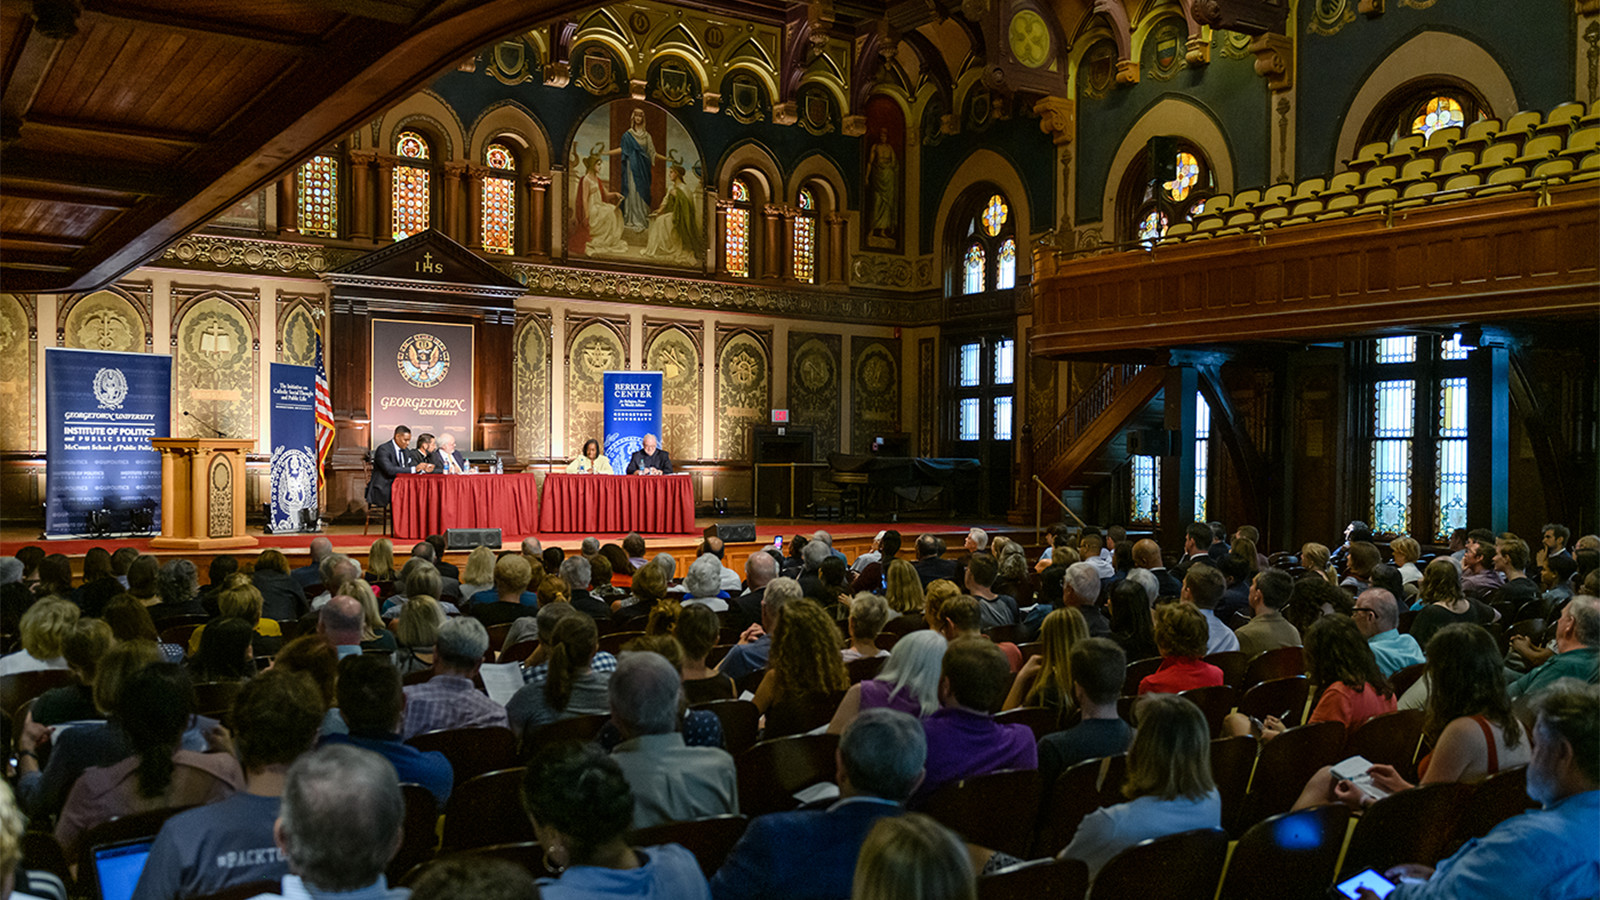 Audience in Gaston Hall on October 2, 2019